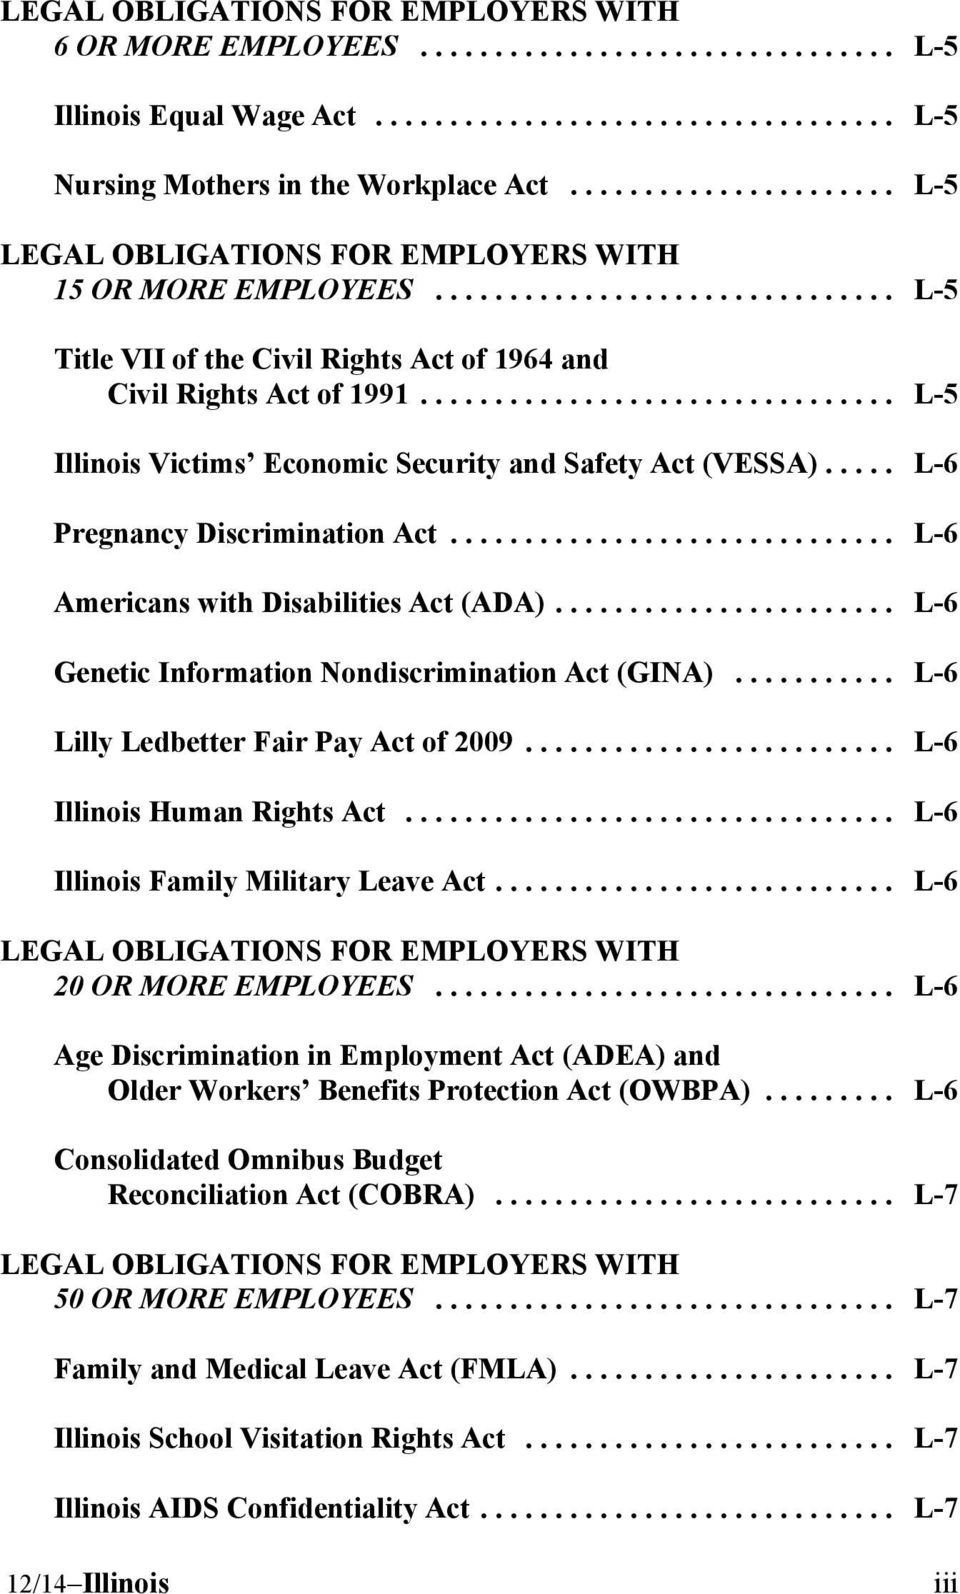 .. L-6 Lilly Ledbetter Fair Pay Act of 2009... L-6 Illinois Human Rights Act... L-6 Illinois Family Military Leave Act... L-6 20 OR MORE EMPLOYEES.